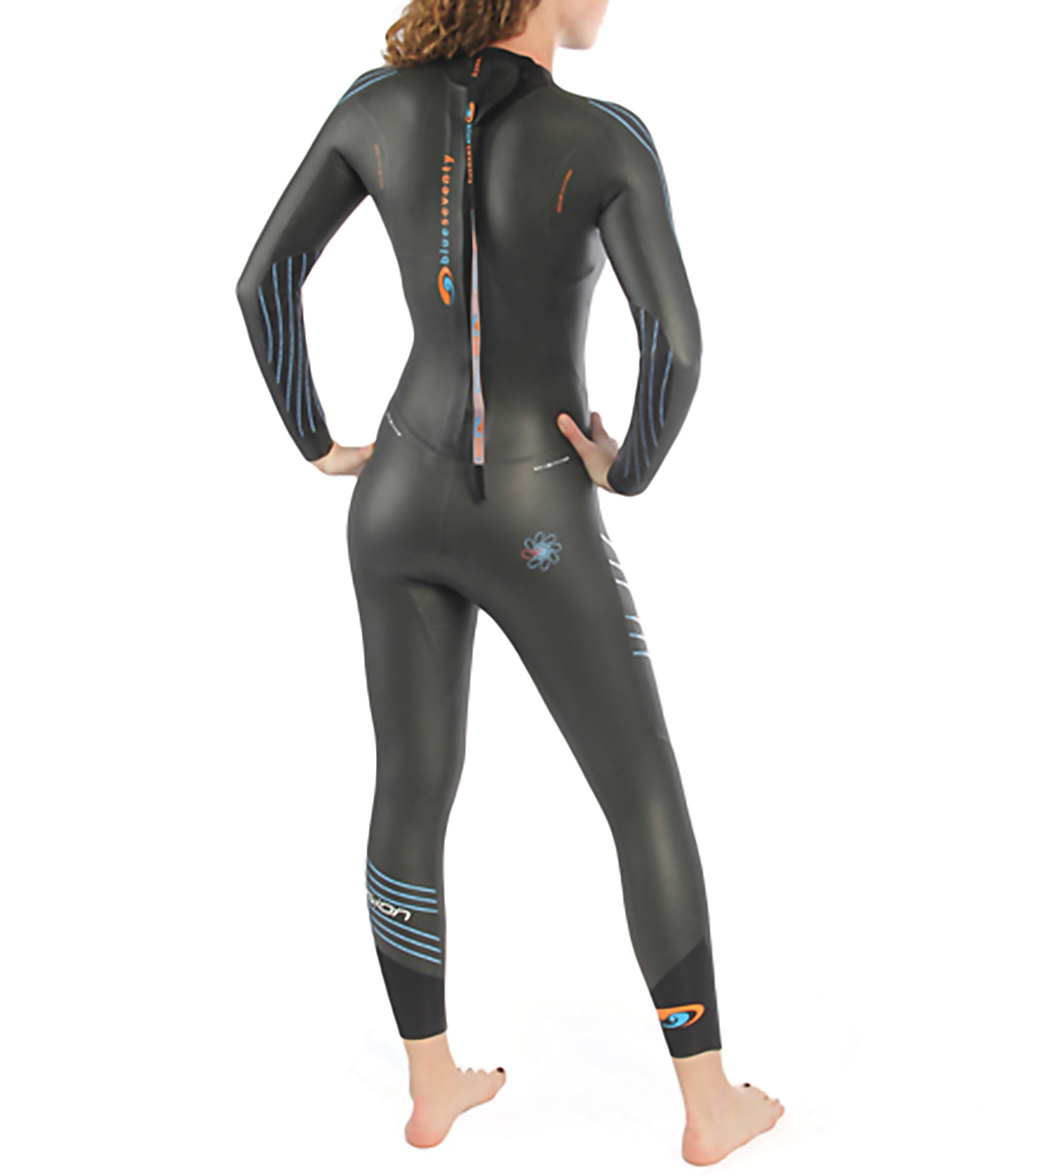 b001a2c647da Blueseventy Women's Fusion Fullsleeve Wetsuit at SwimOutlet.com ...